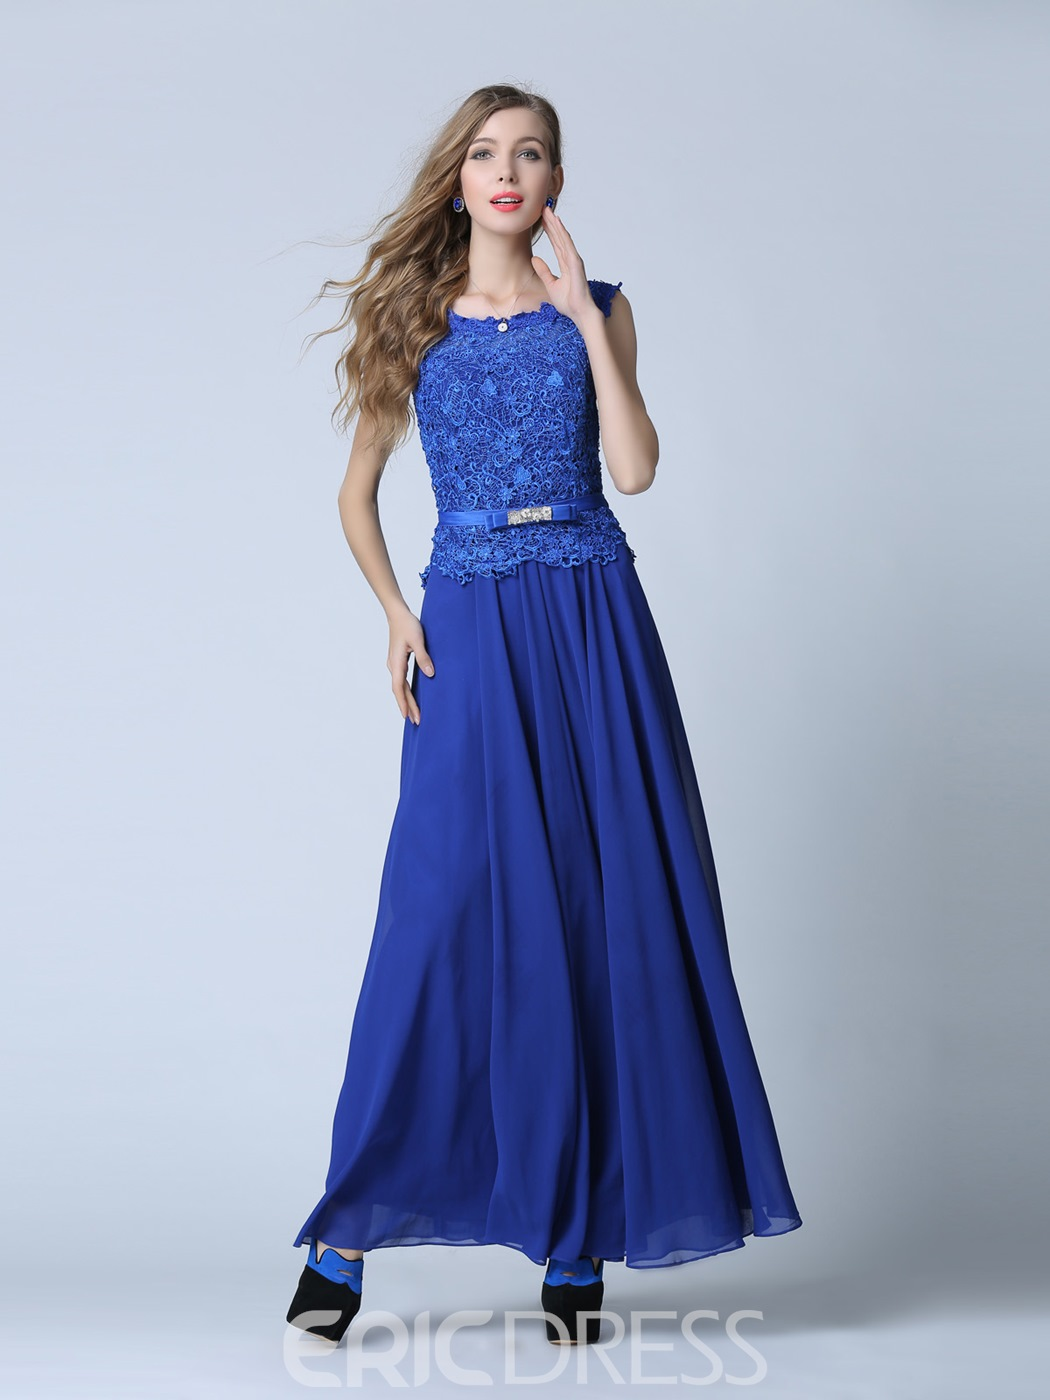 Ericdress A-Line Scoop Lace Sashes Floor-Length Evening Dress